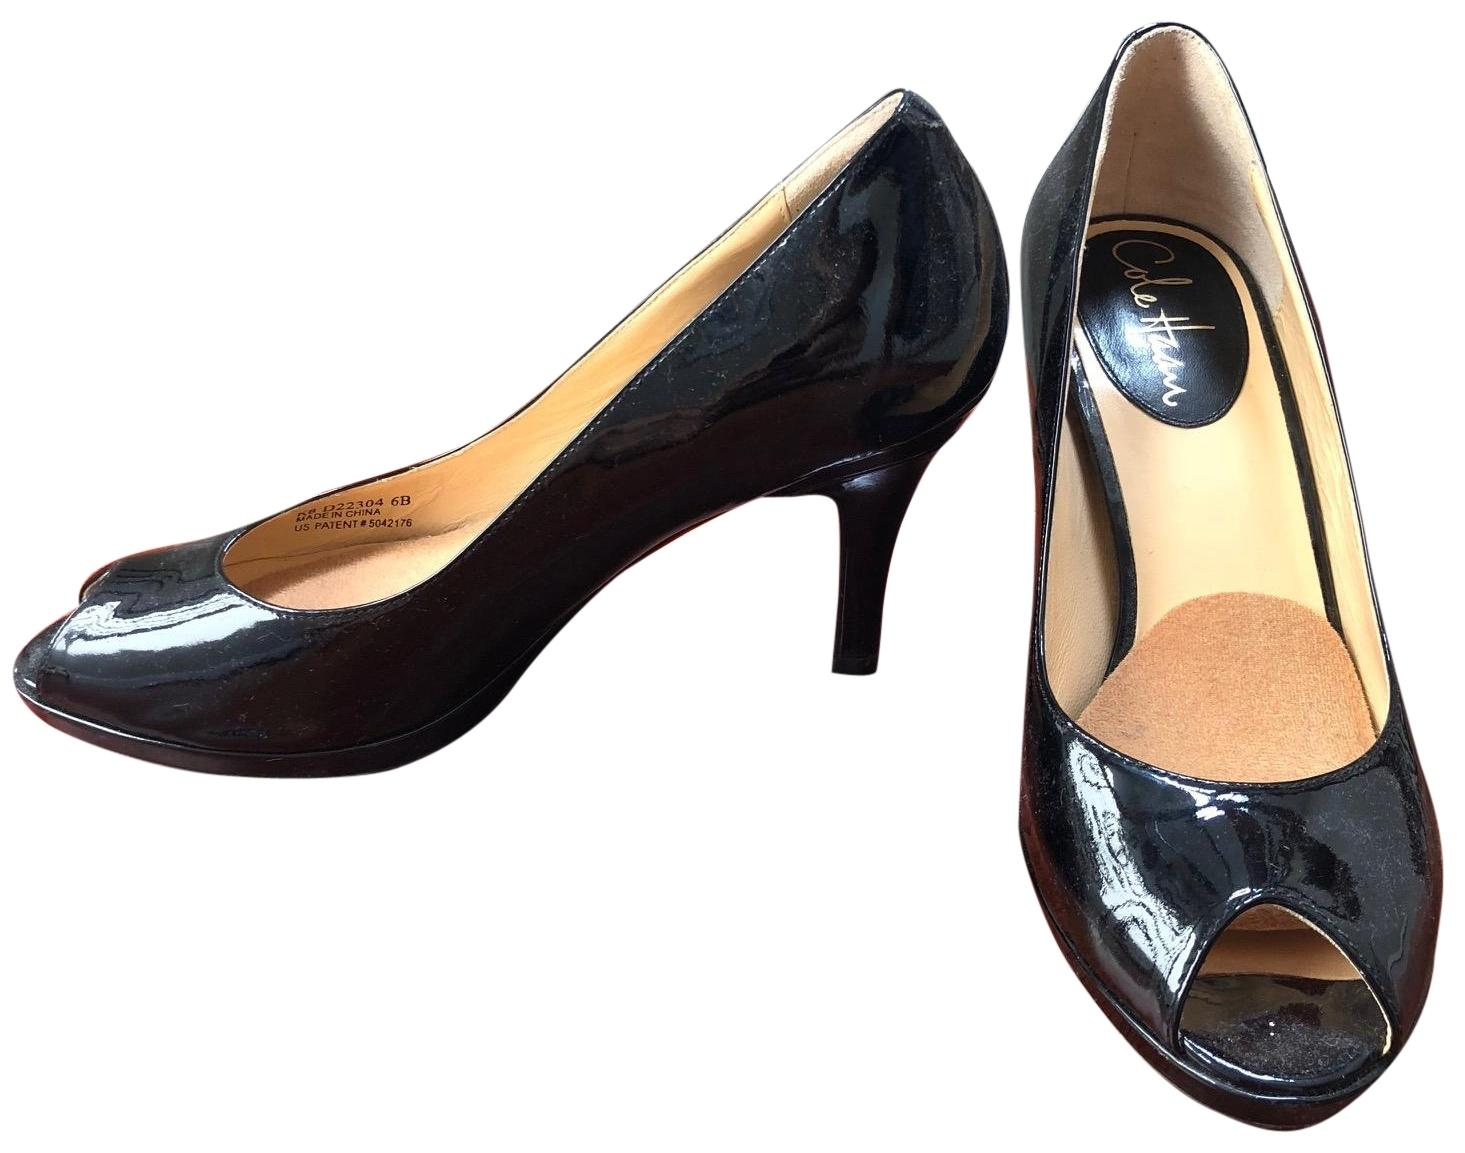 07316223a8e Cole Haan Black Open Toe Work Pumps Size Size Size EU 36 (Approx. US ...